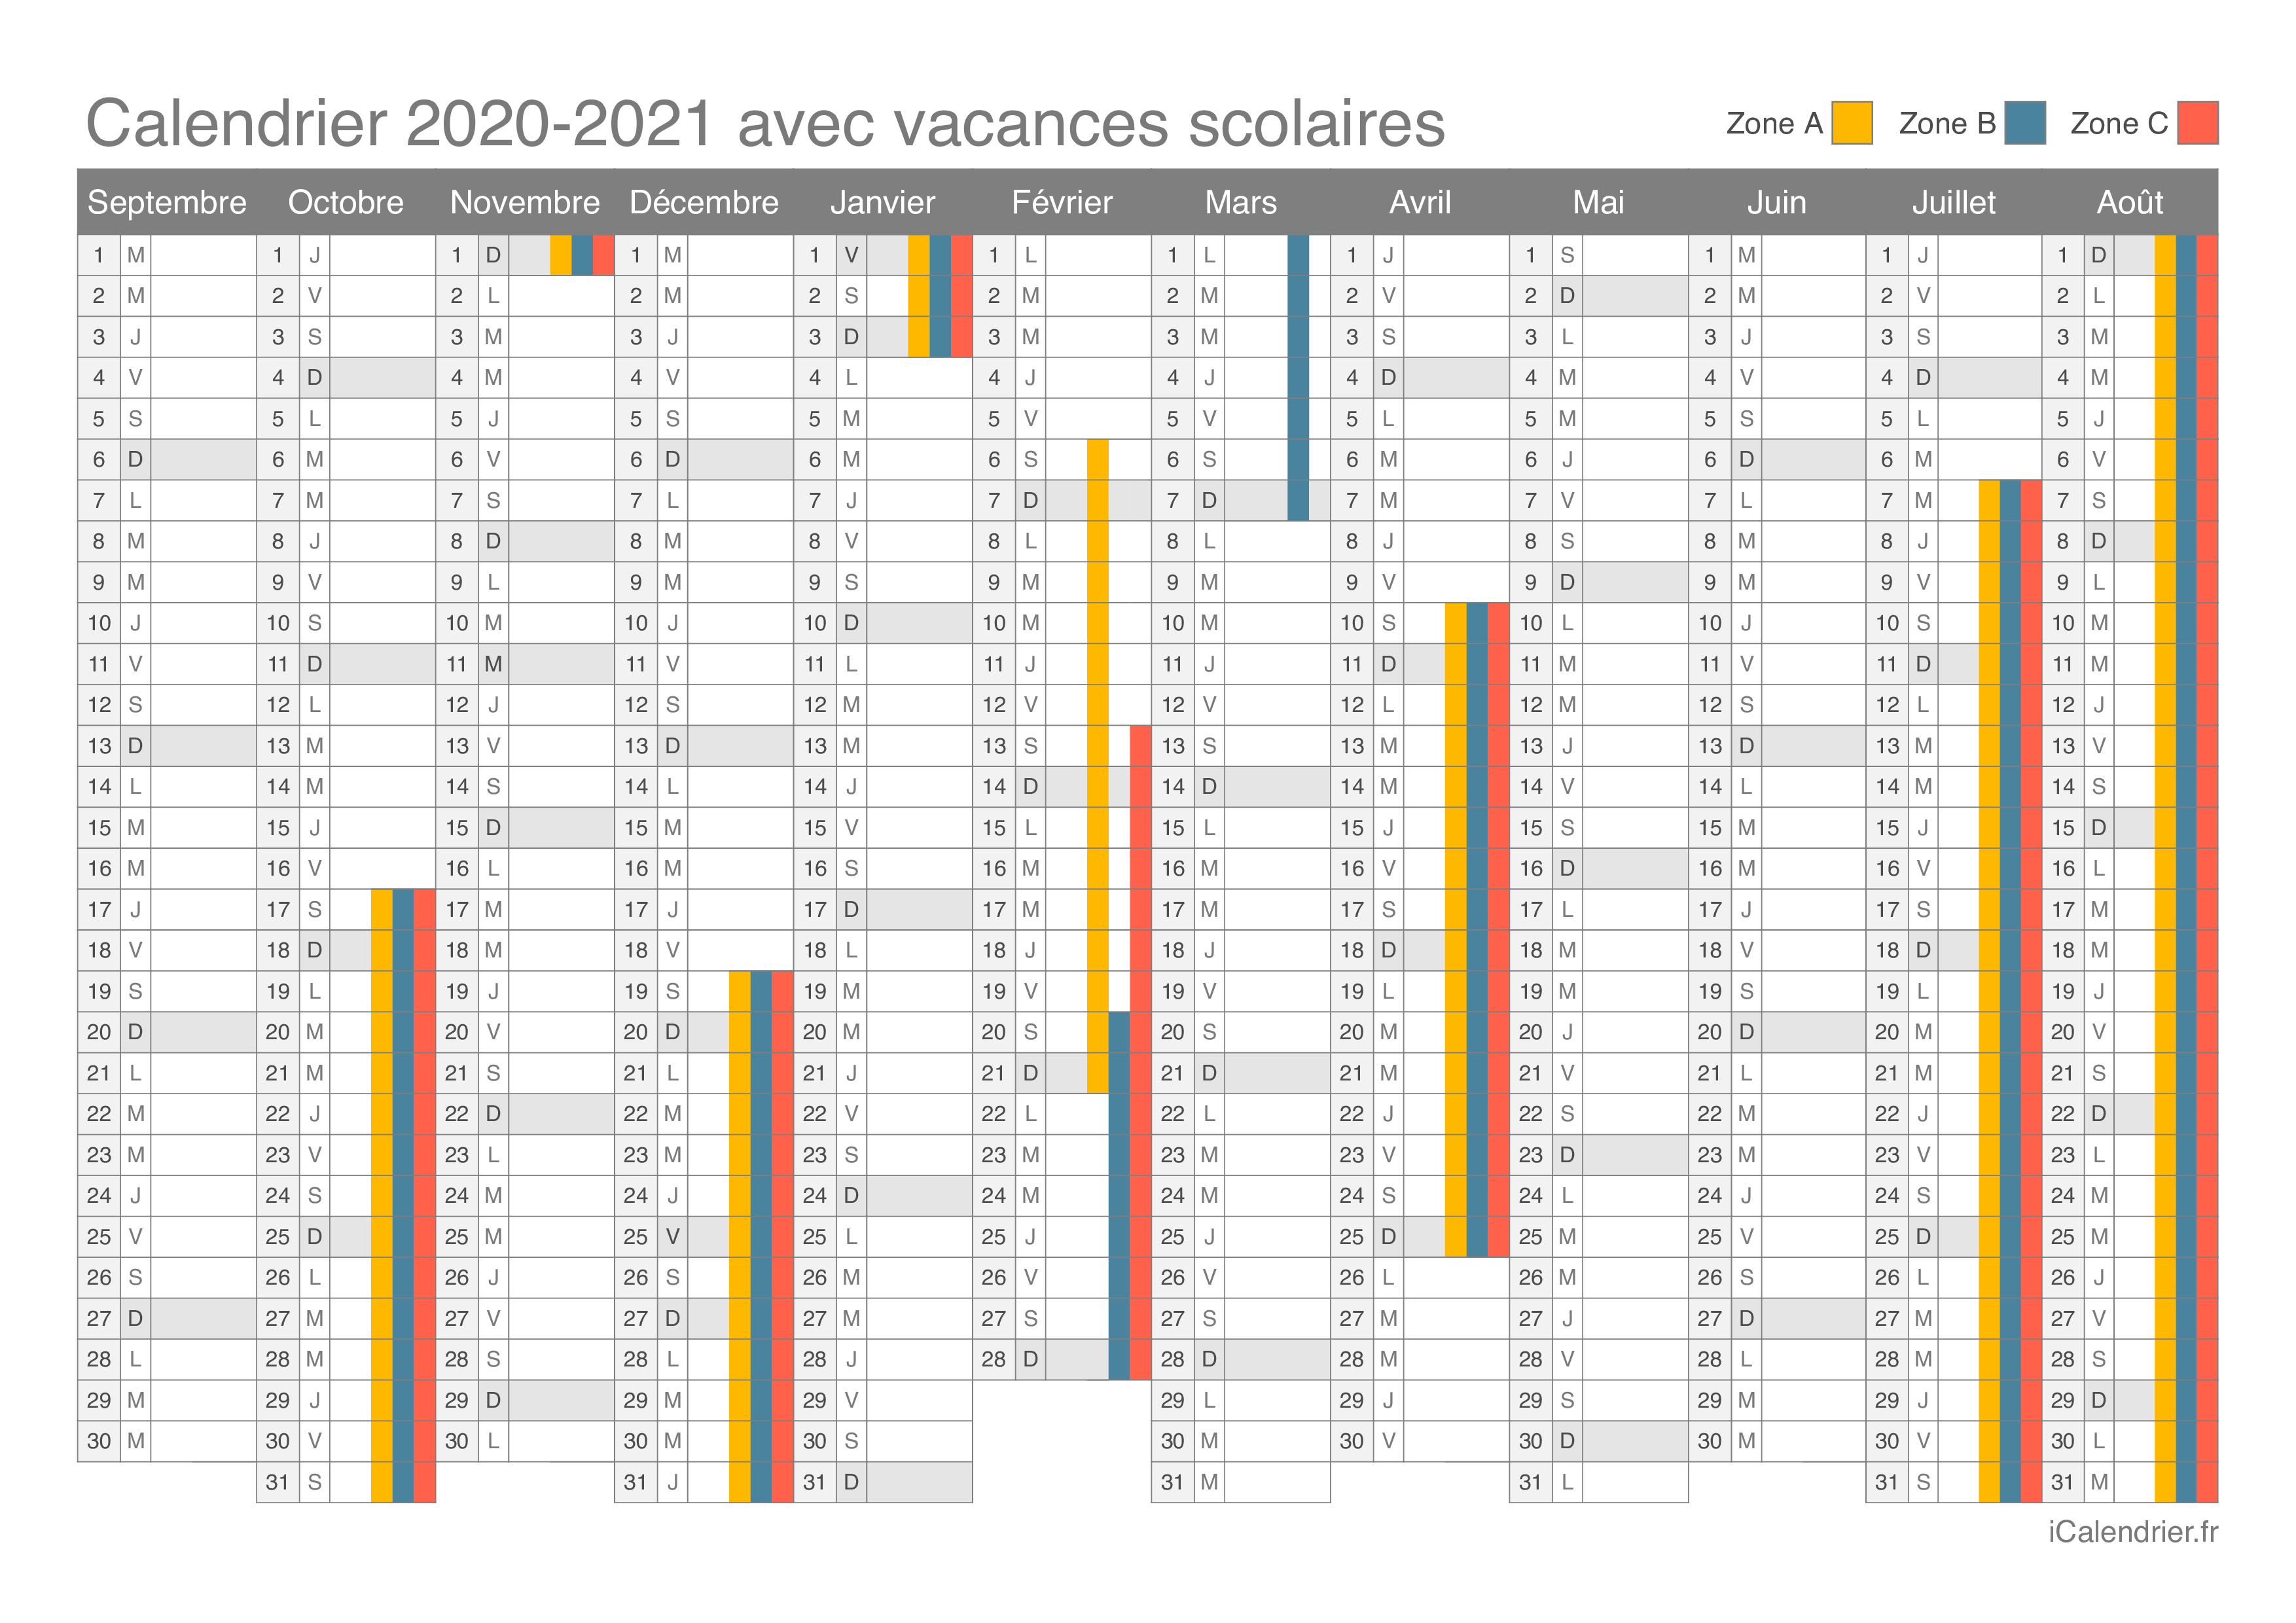 Calendrier Scolaire 2021 Zone A Vacances scolaires 2020 2021   Dates   iCalendrier